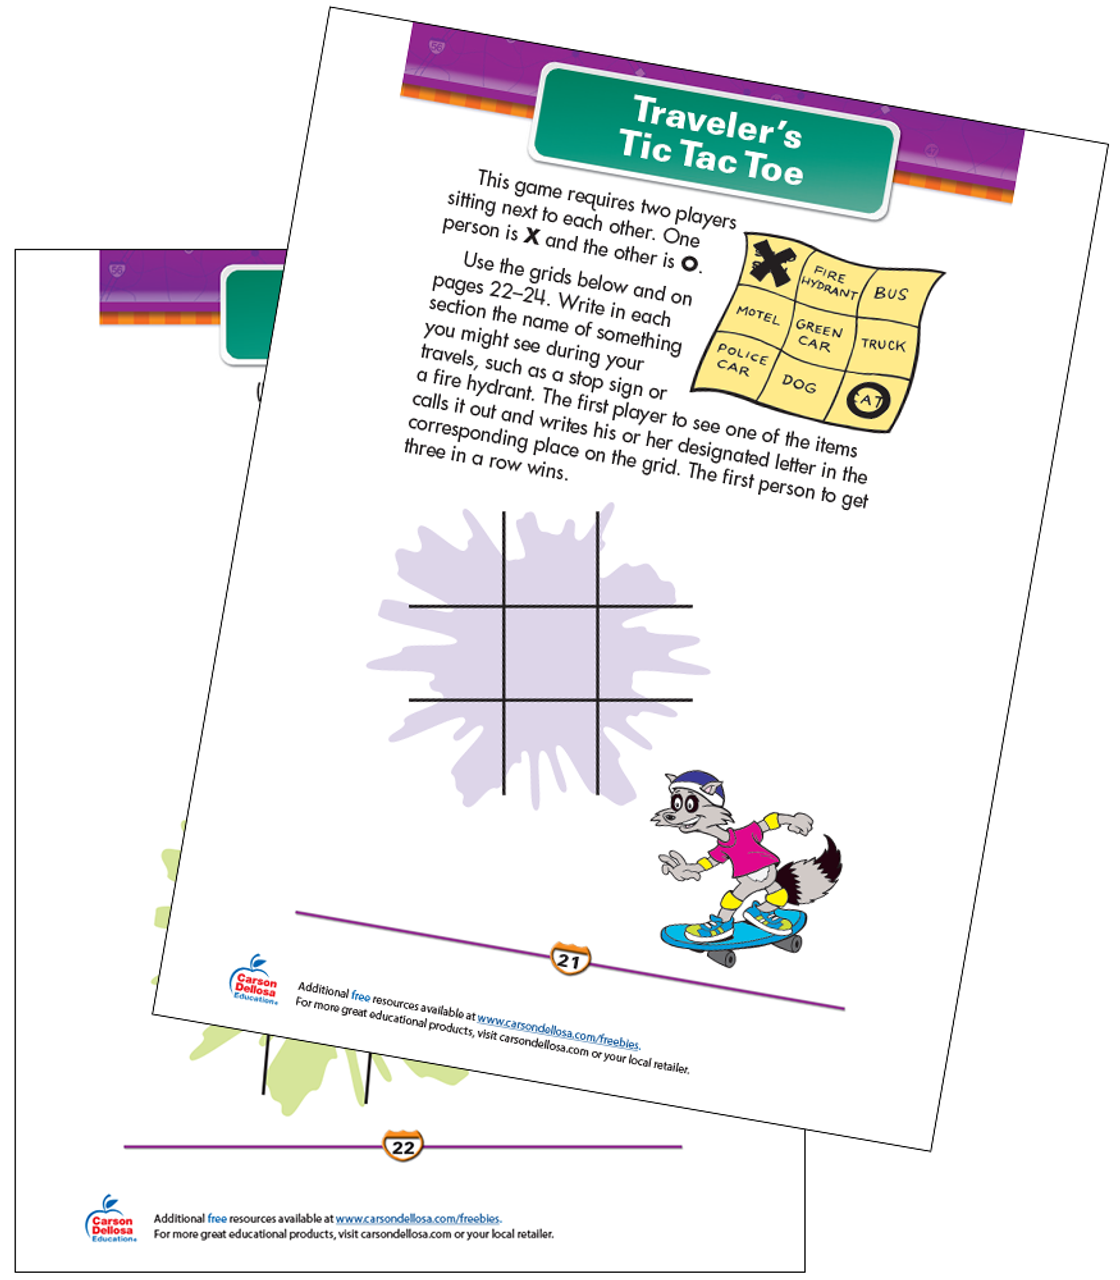 picture about Printable Tic Tac Toe titled Travellers Tic Tac Toe Cost-free Printable Carson Dellosa